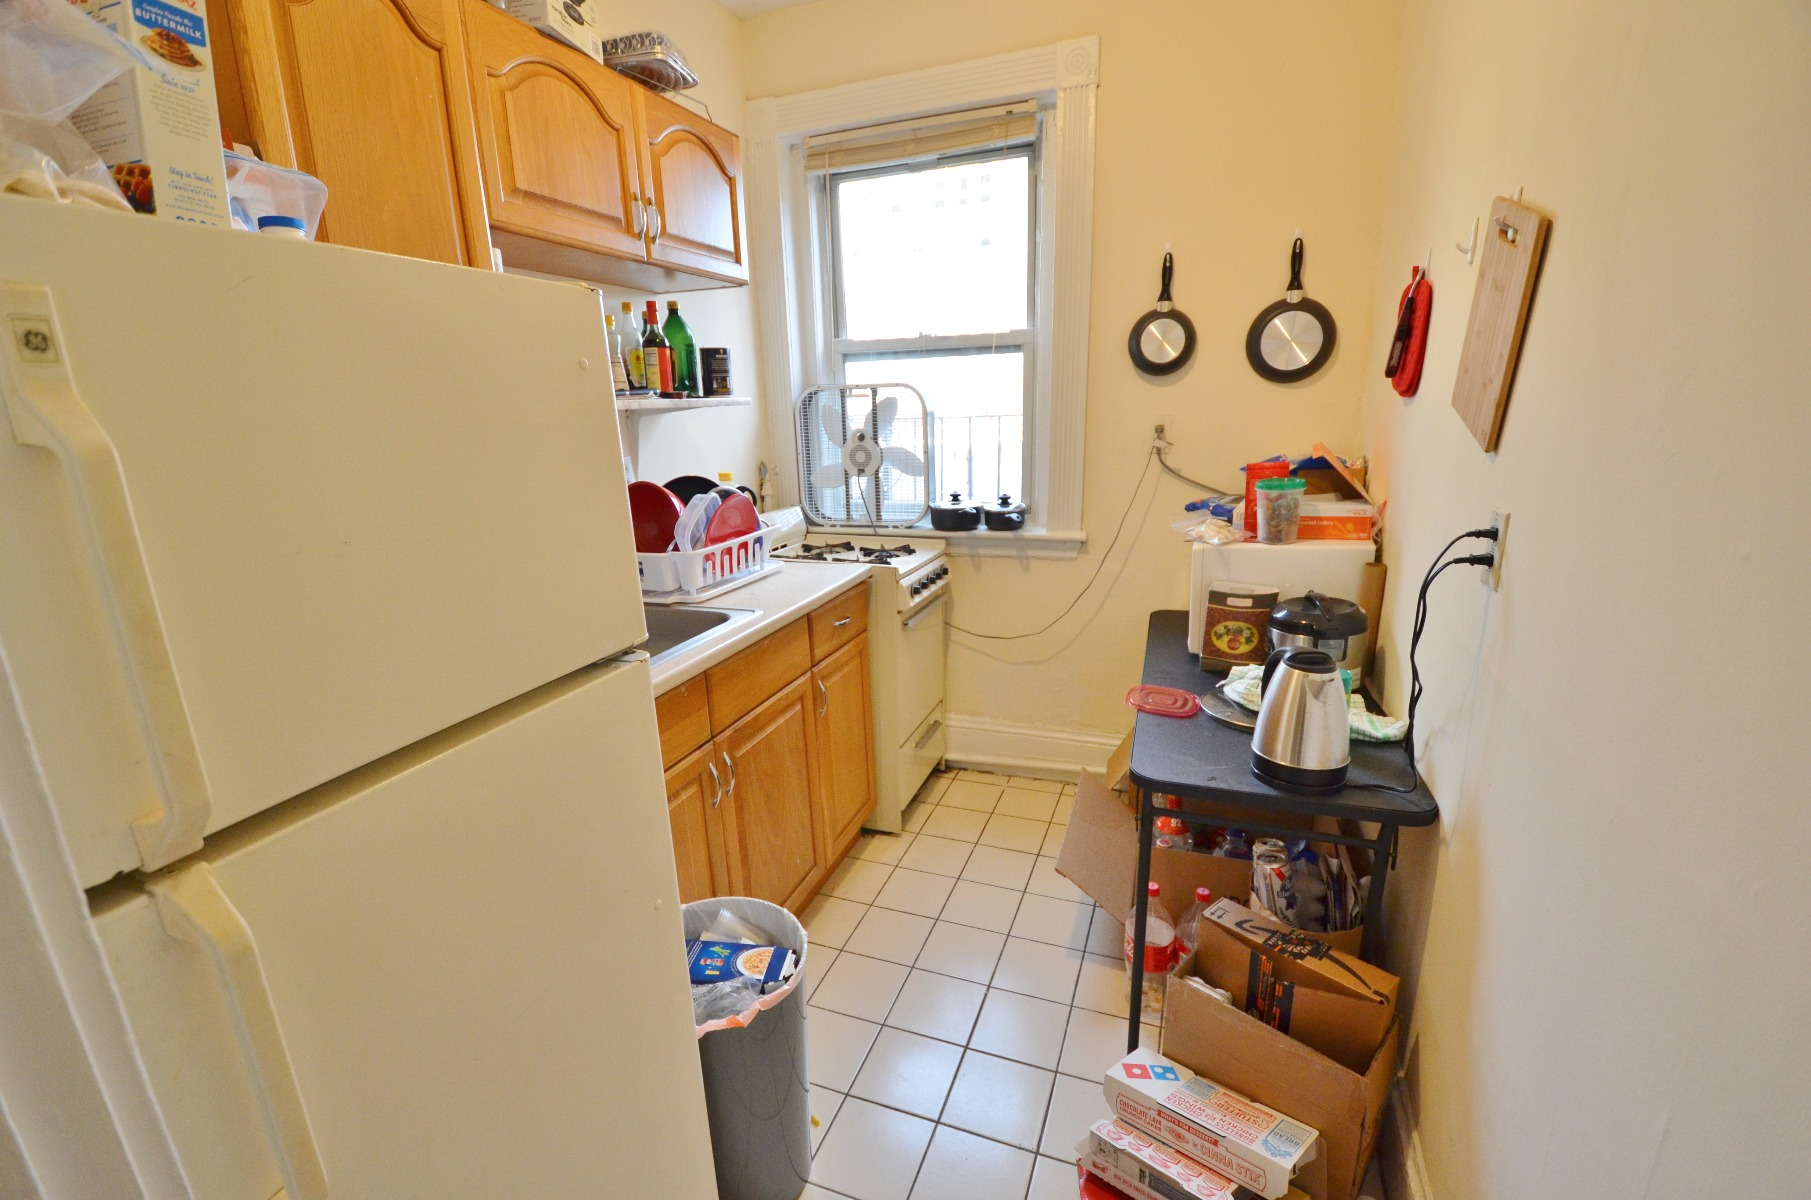 Avail 9/1 - Well lit, Spacious 1 BR on Peterborough St